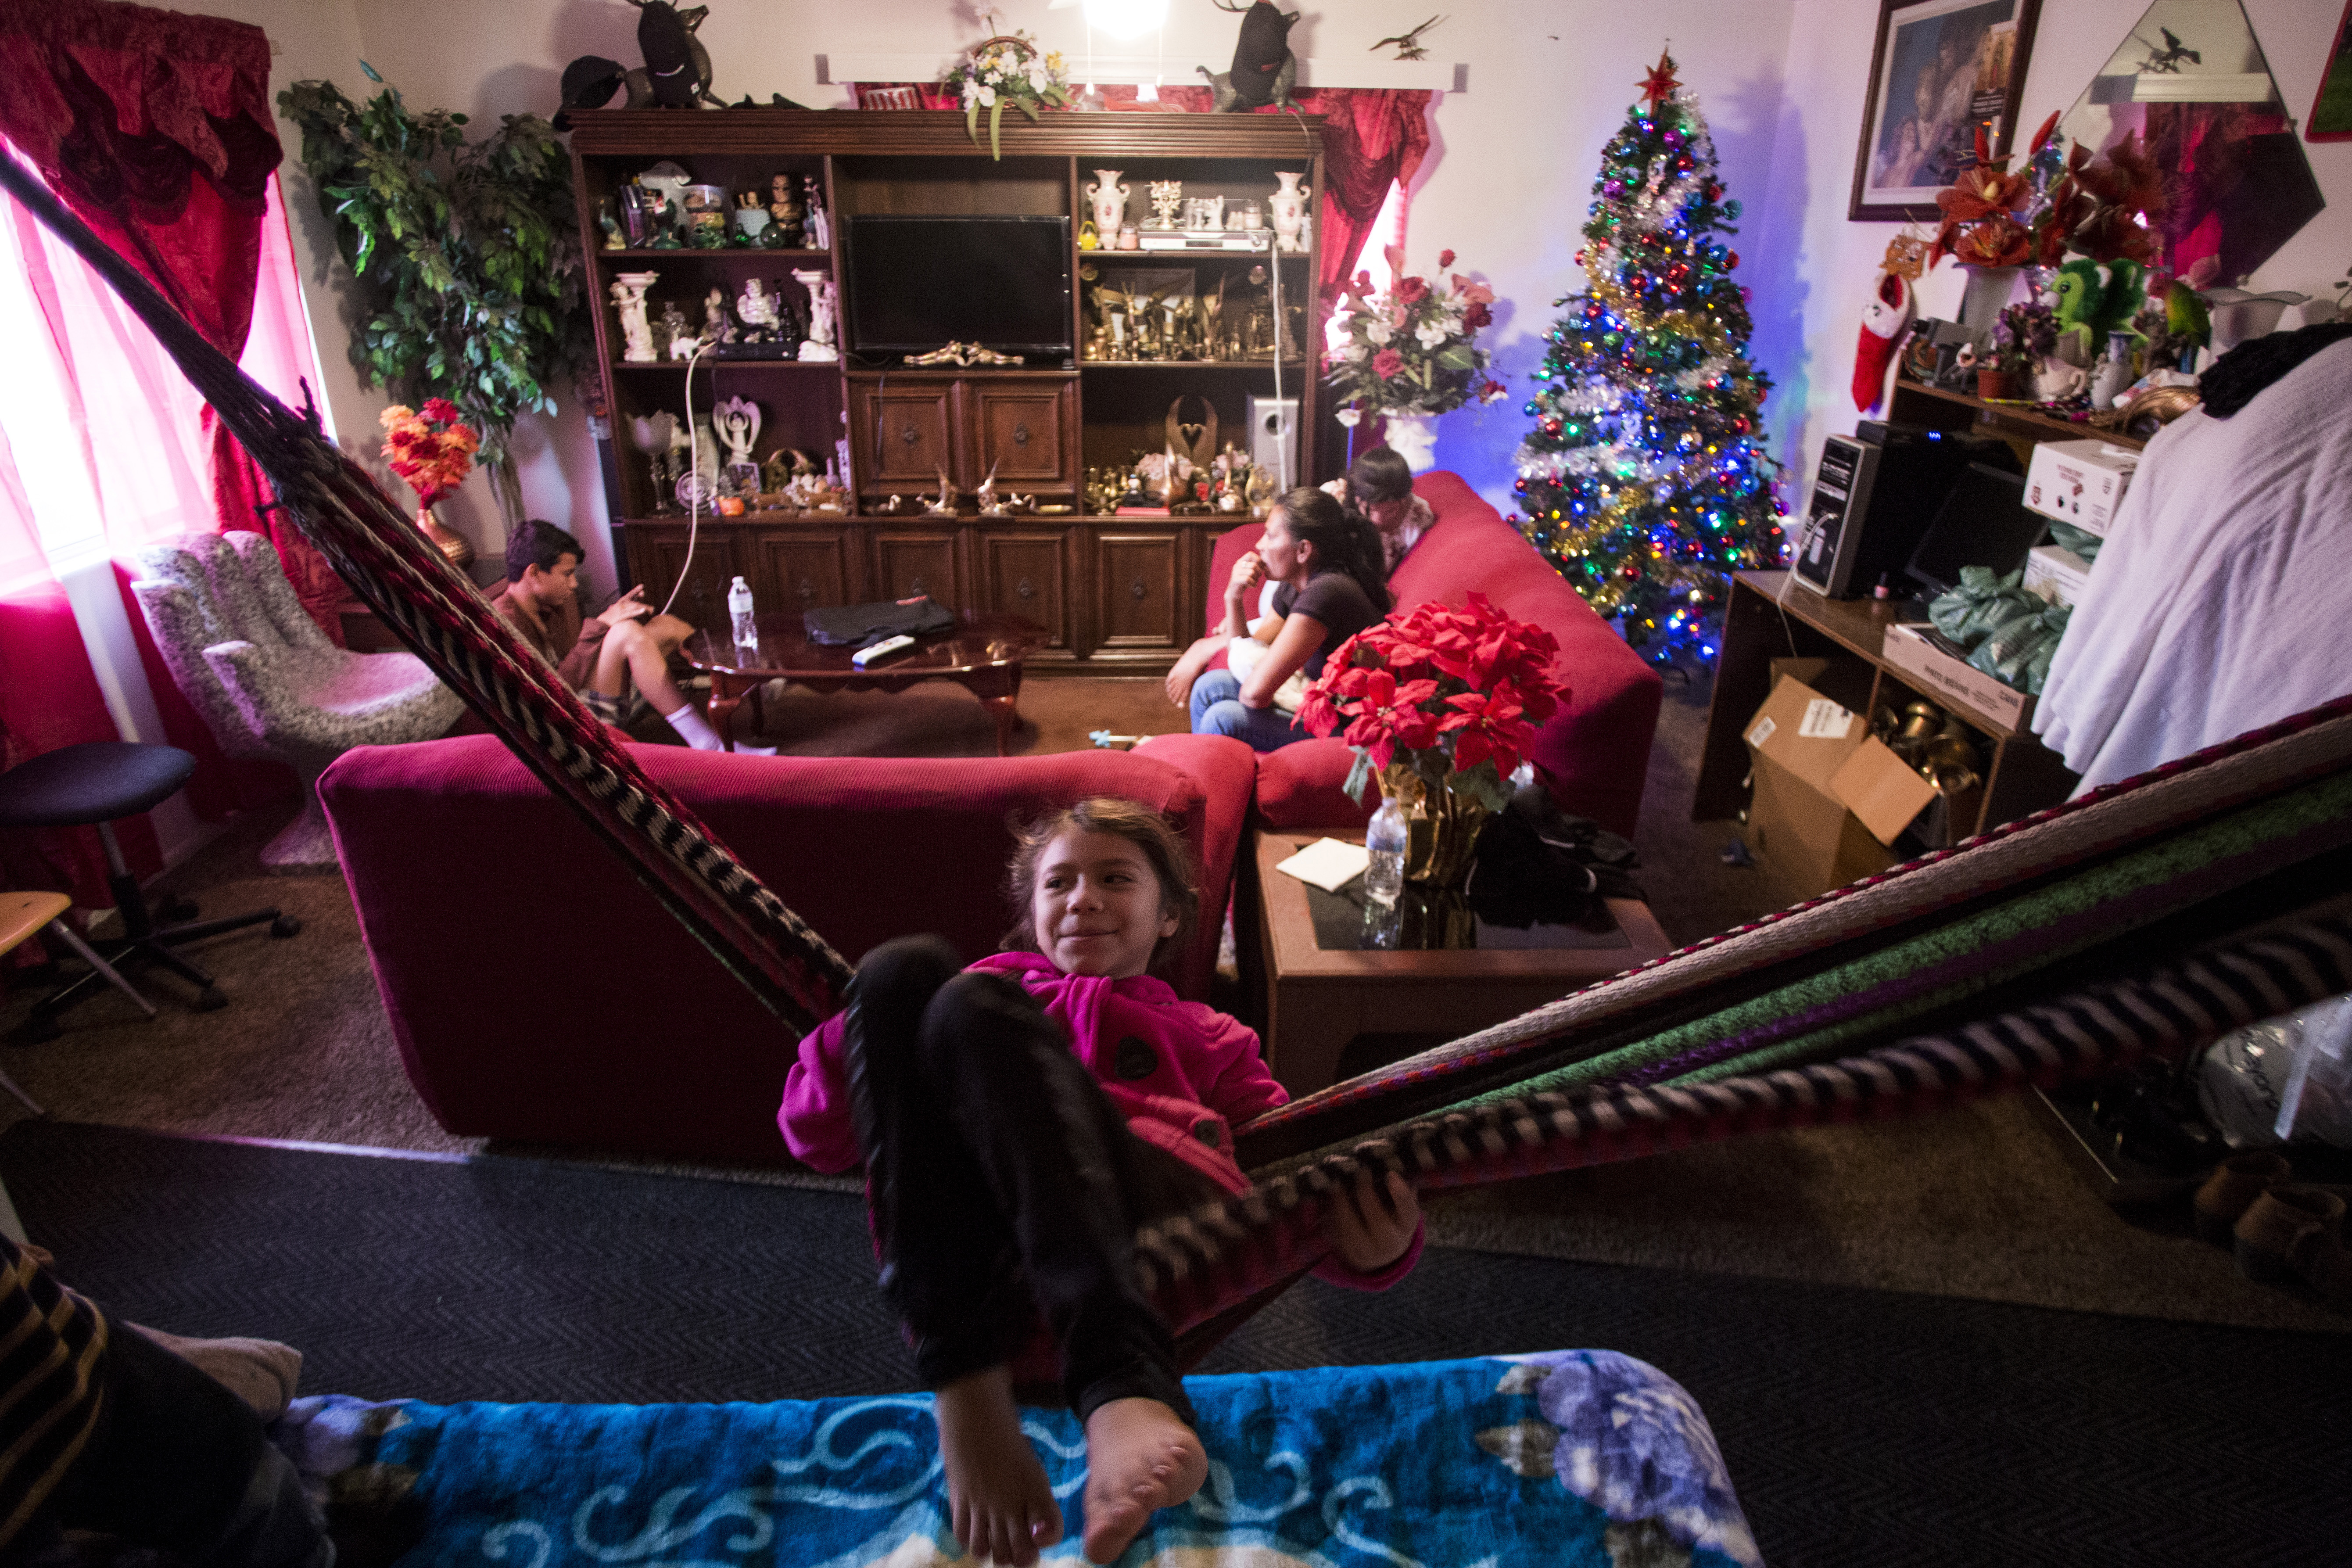 Elen Euceda, 8, plays on the hammock temporarily set up in the living room of her aunt's home in Bakersfield, Calif. MUST CREDIT: Photo for The Washington Post by Jenna Schoenefeld